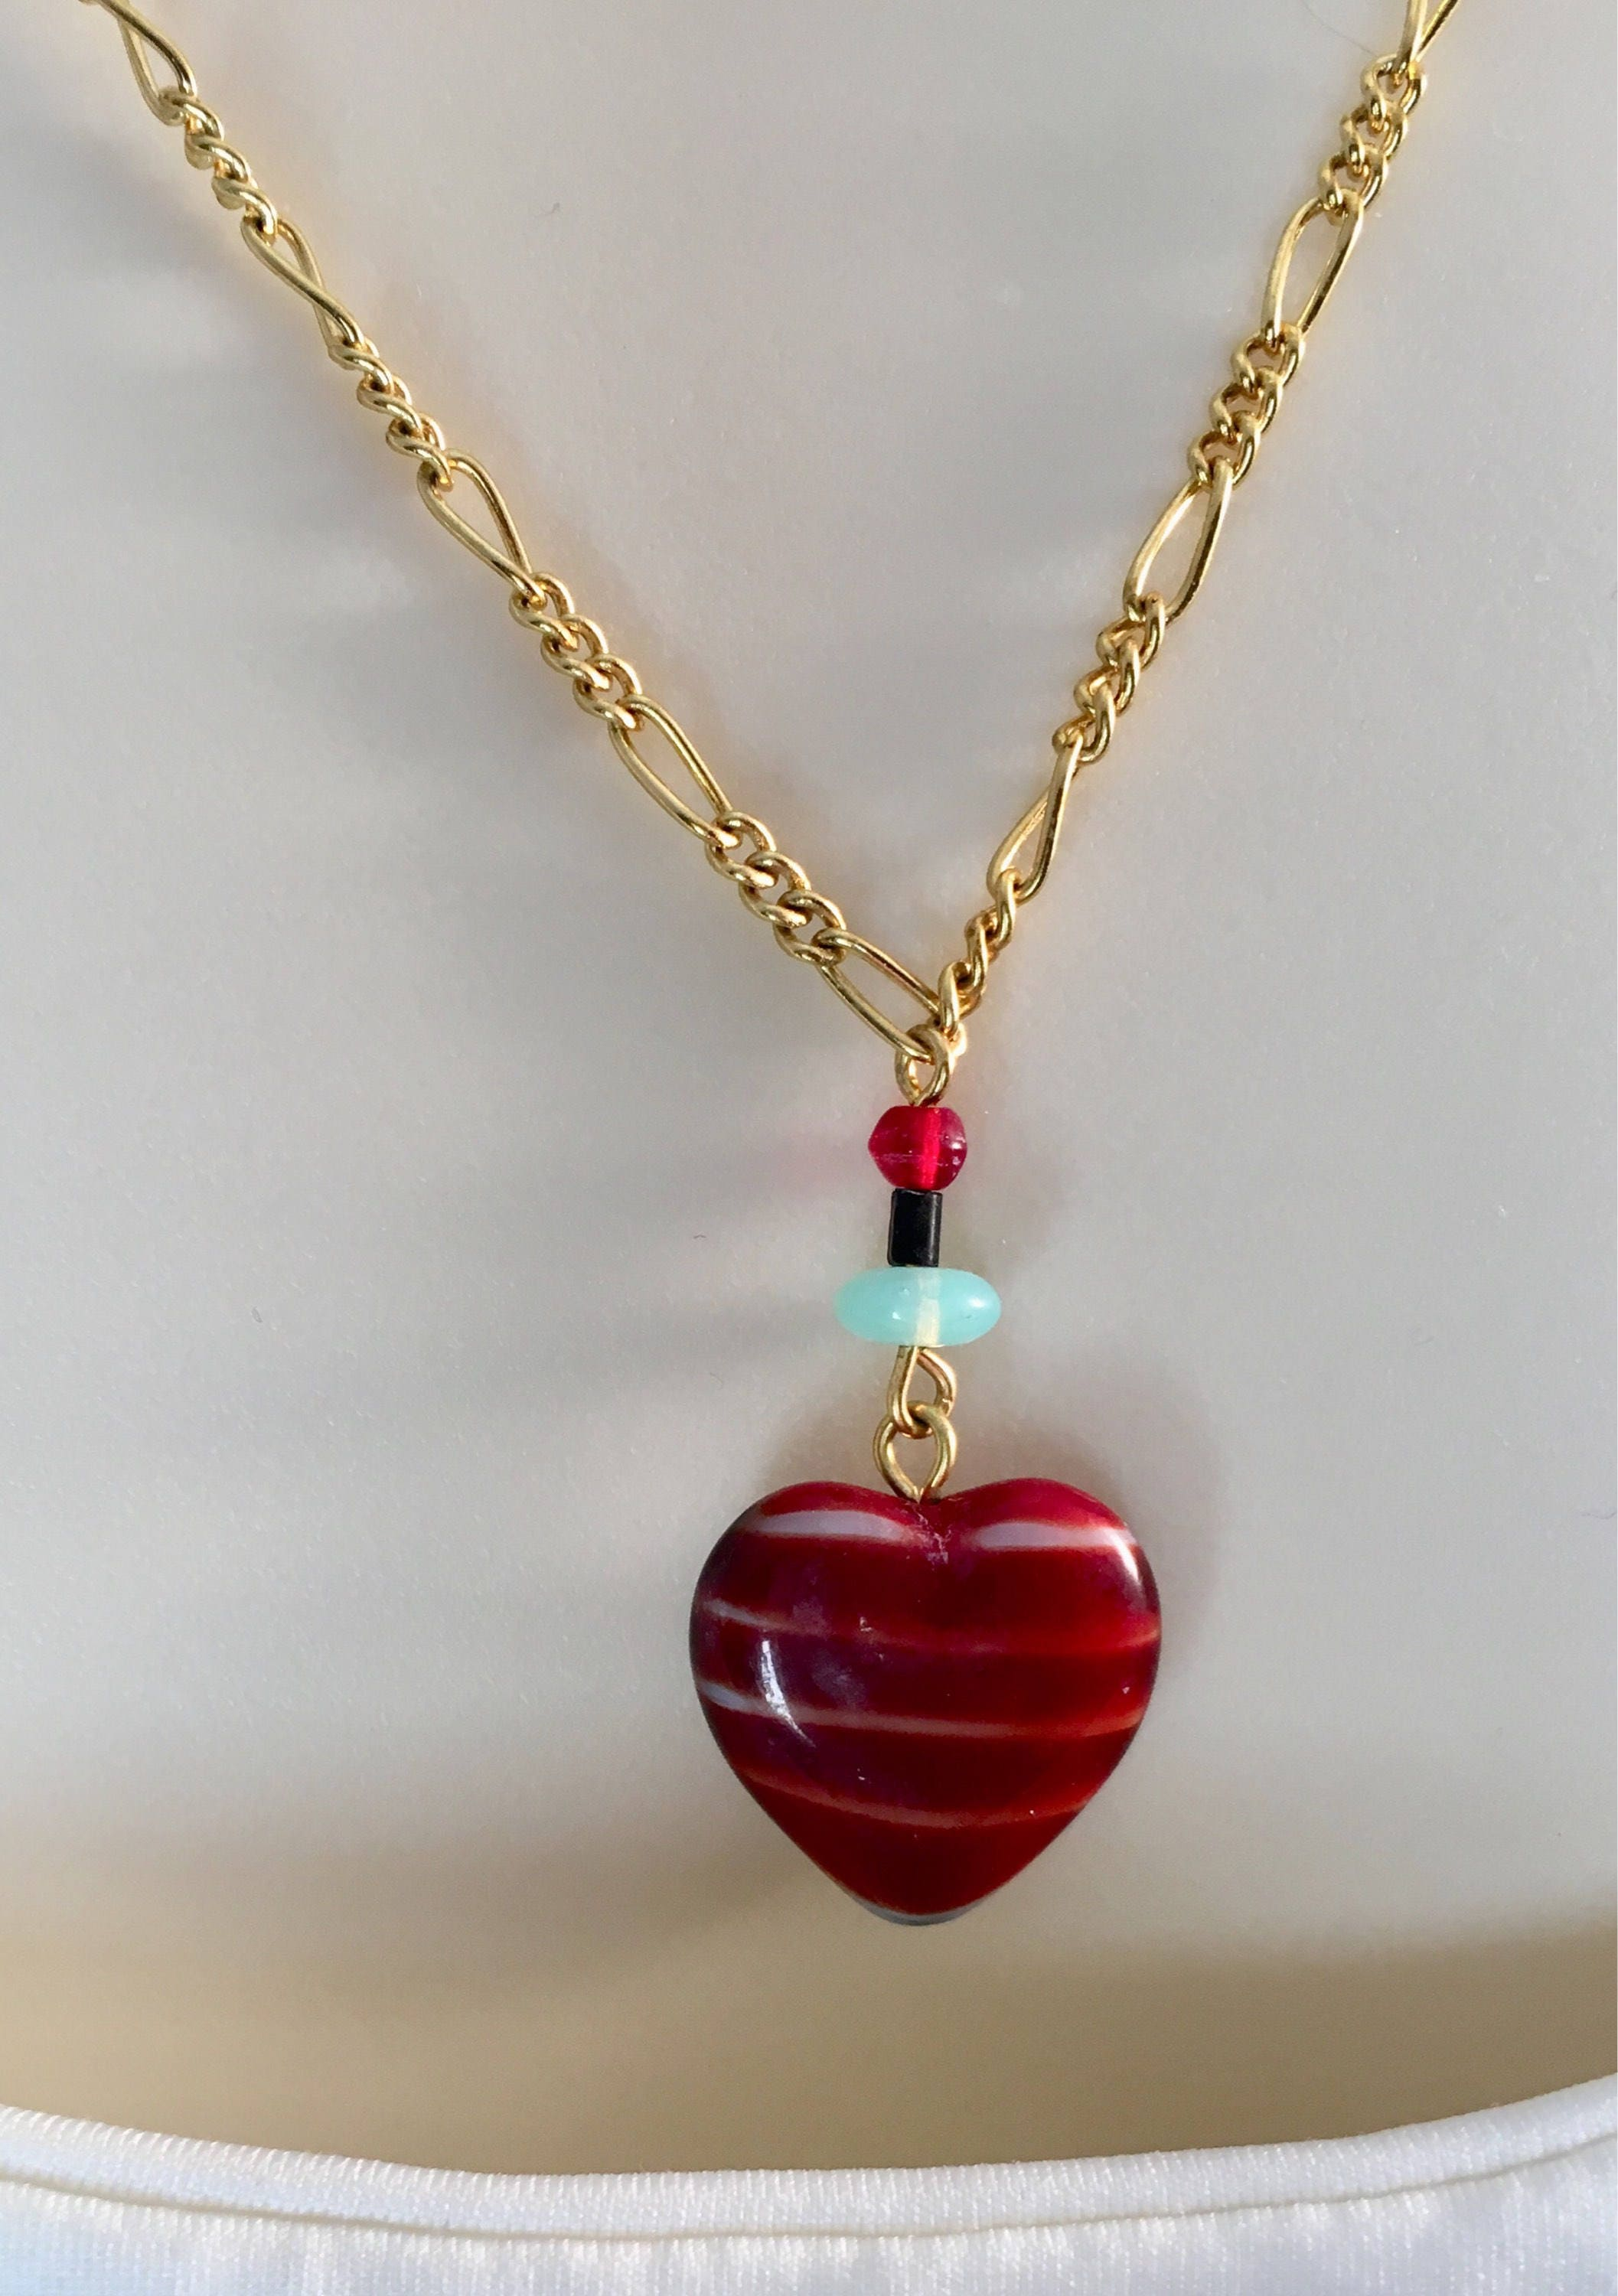 watches stone life red free eternal shipping tree of overstock product long brass orders natural thailand handmade heart on over jewelry necklace